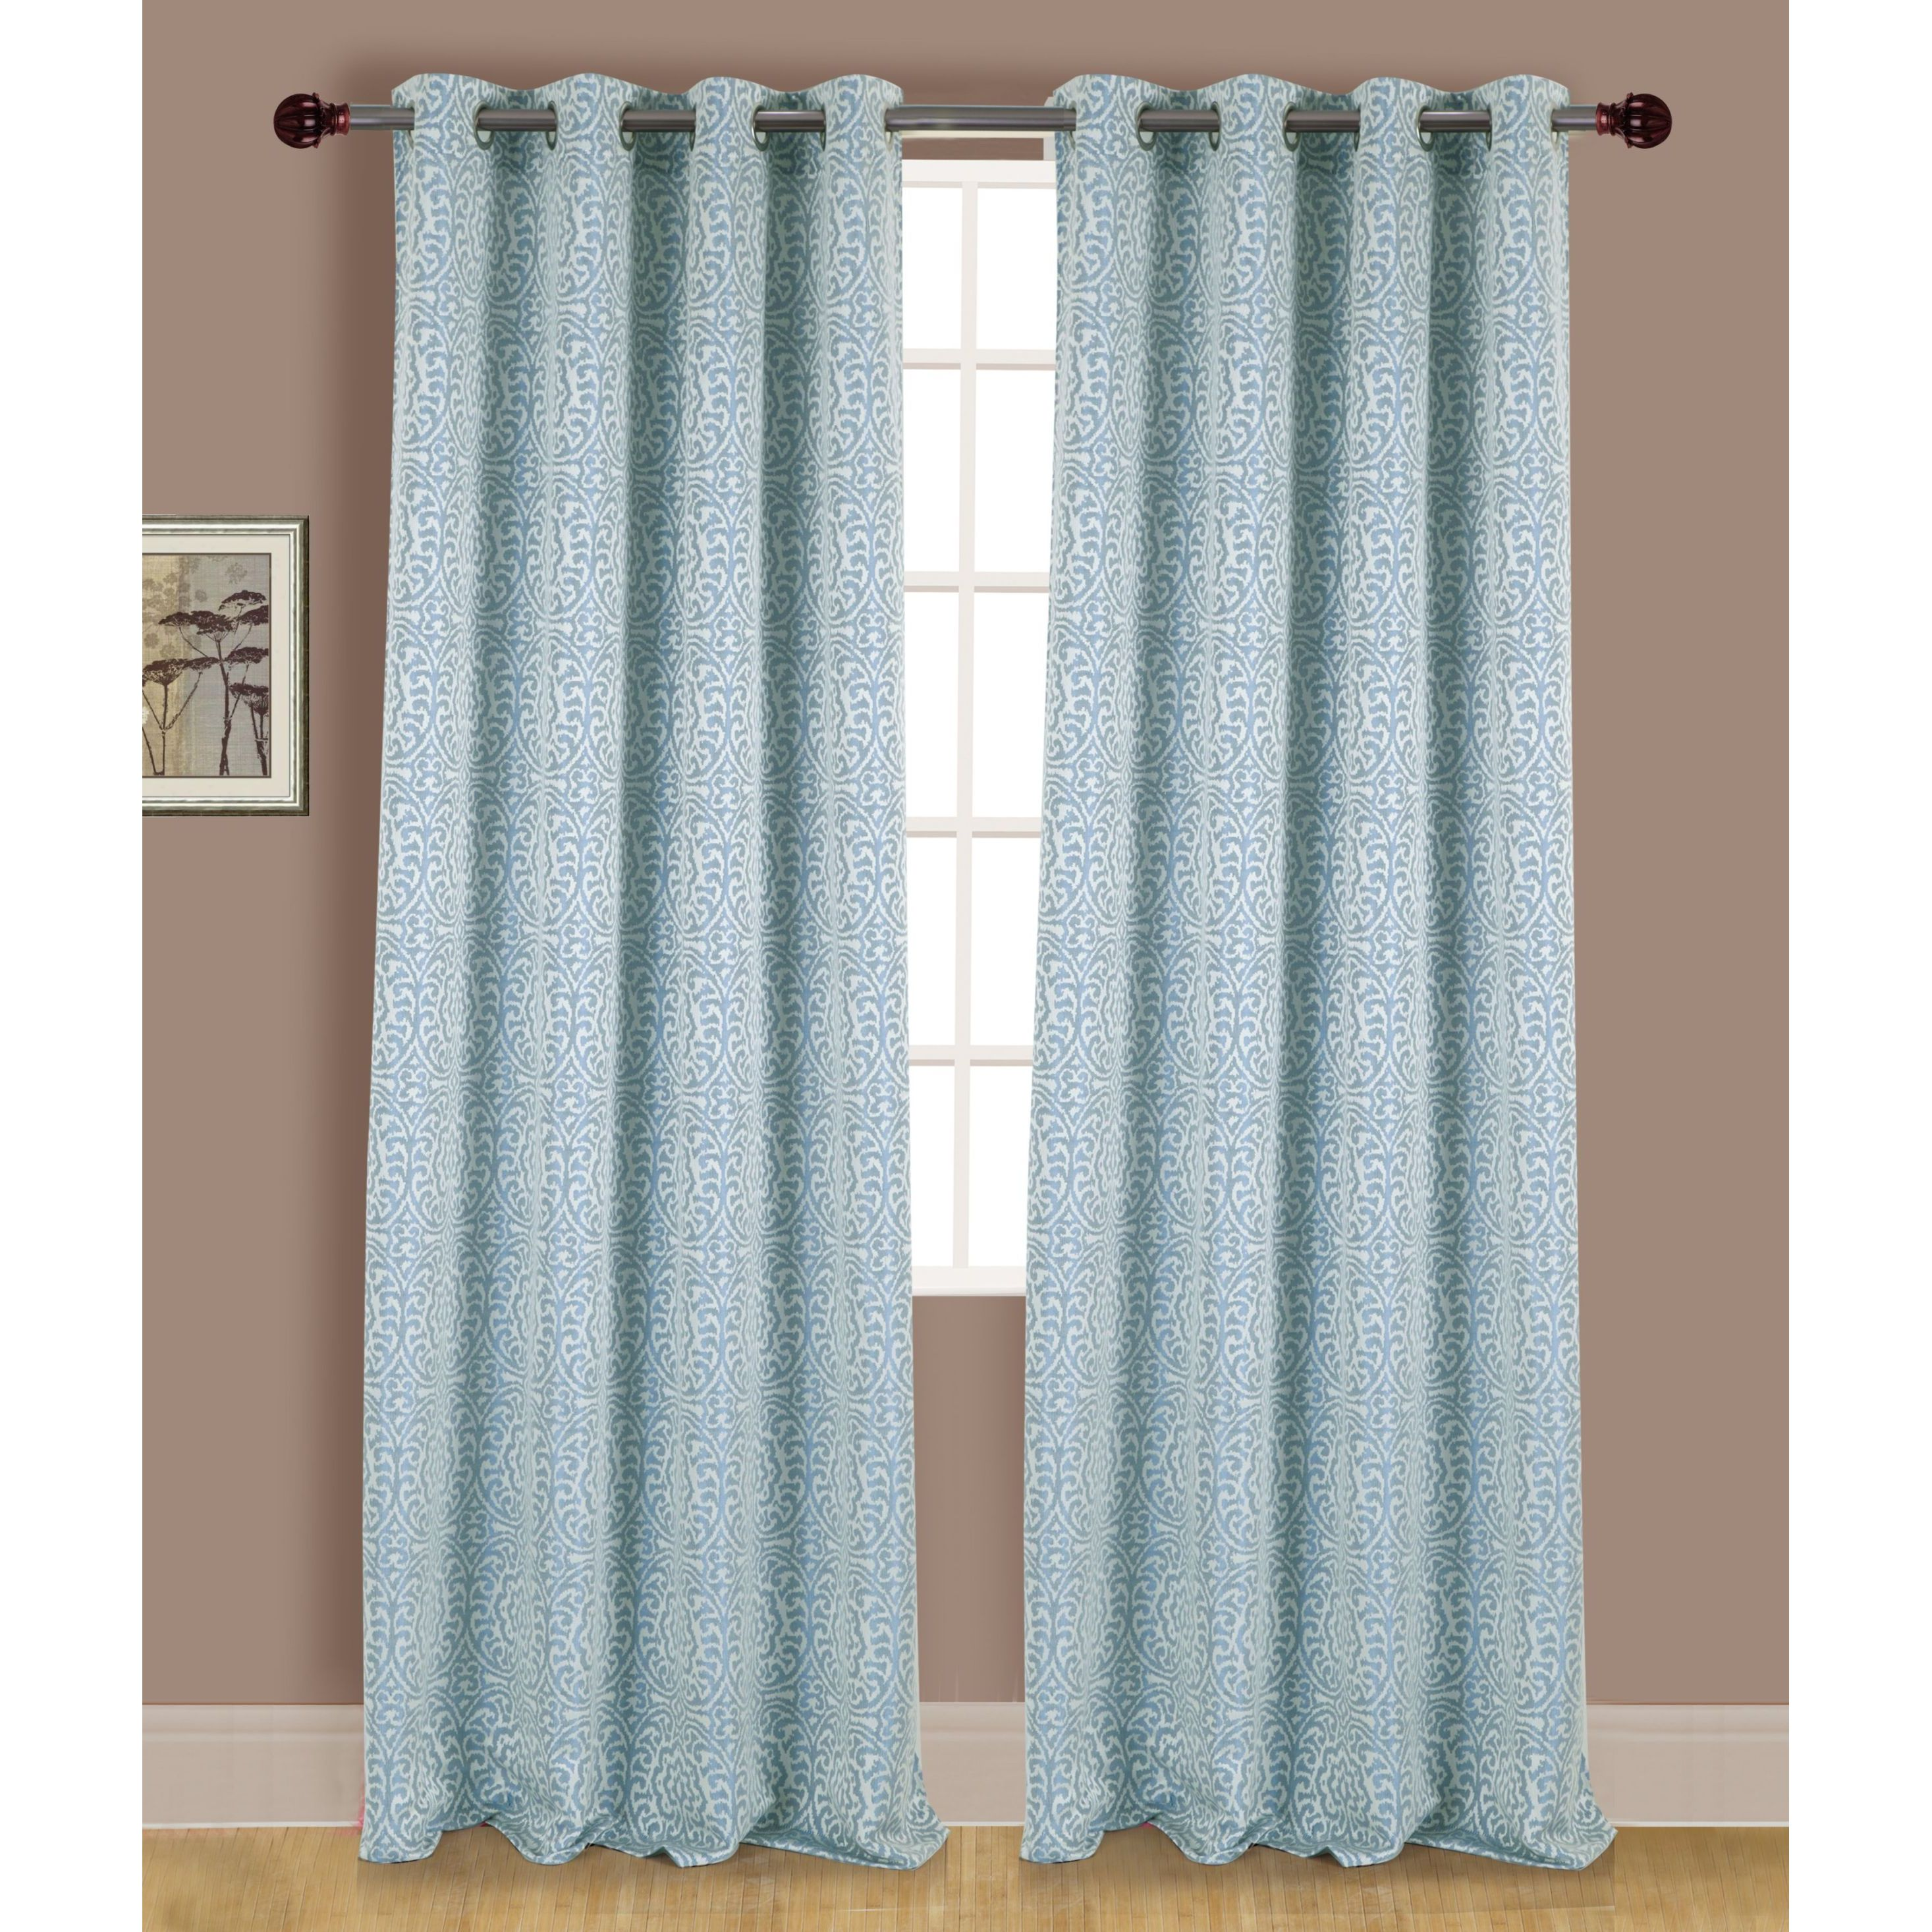 chambray bedding matching ready pink of uk roller ideas luxury bedeck and sets made beautiful size habitat grey palerey at curtain andrtainspalertain blinds images curtainspale pale eyelet curtains greyrtains full